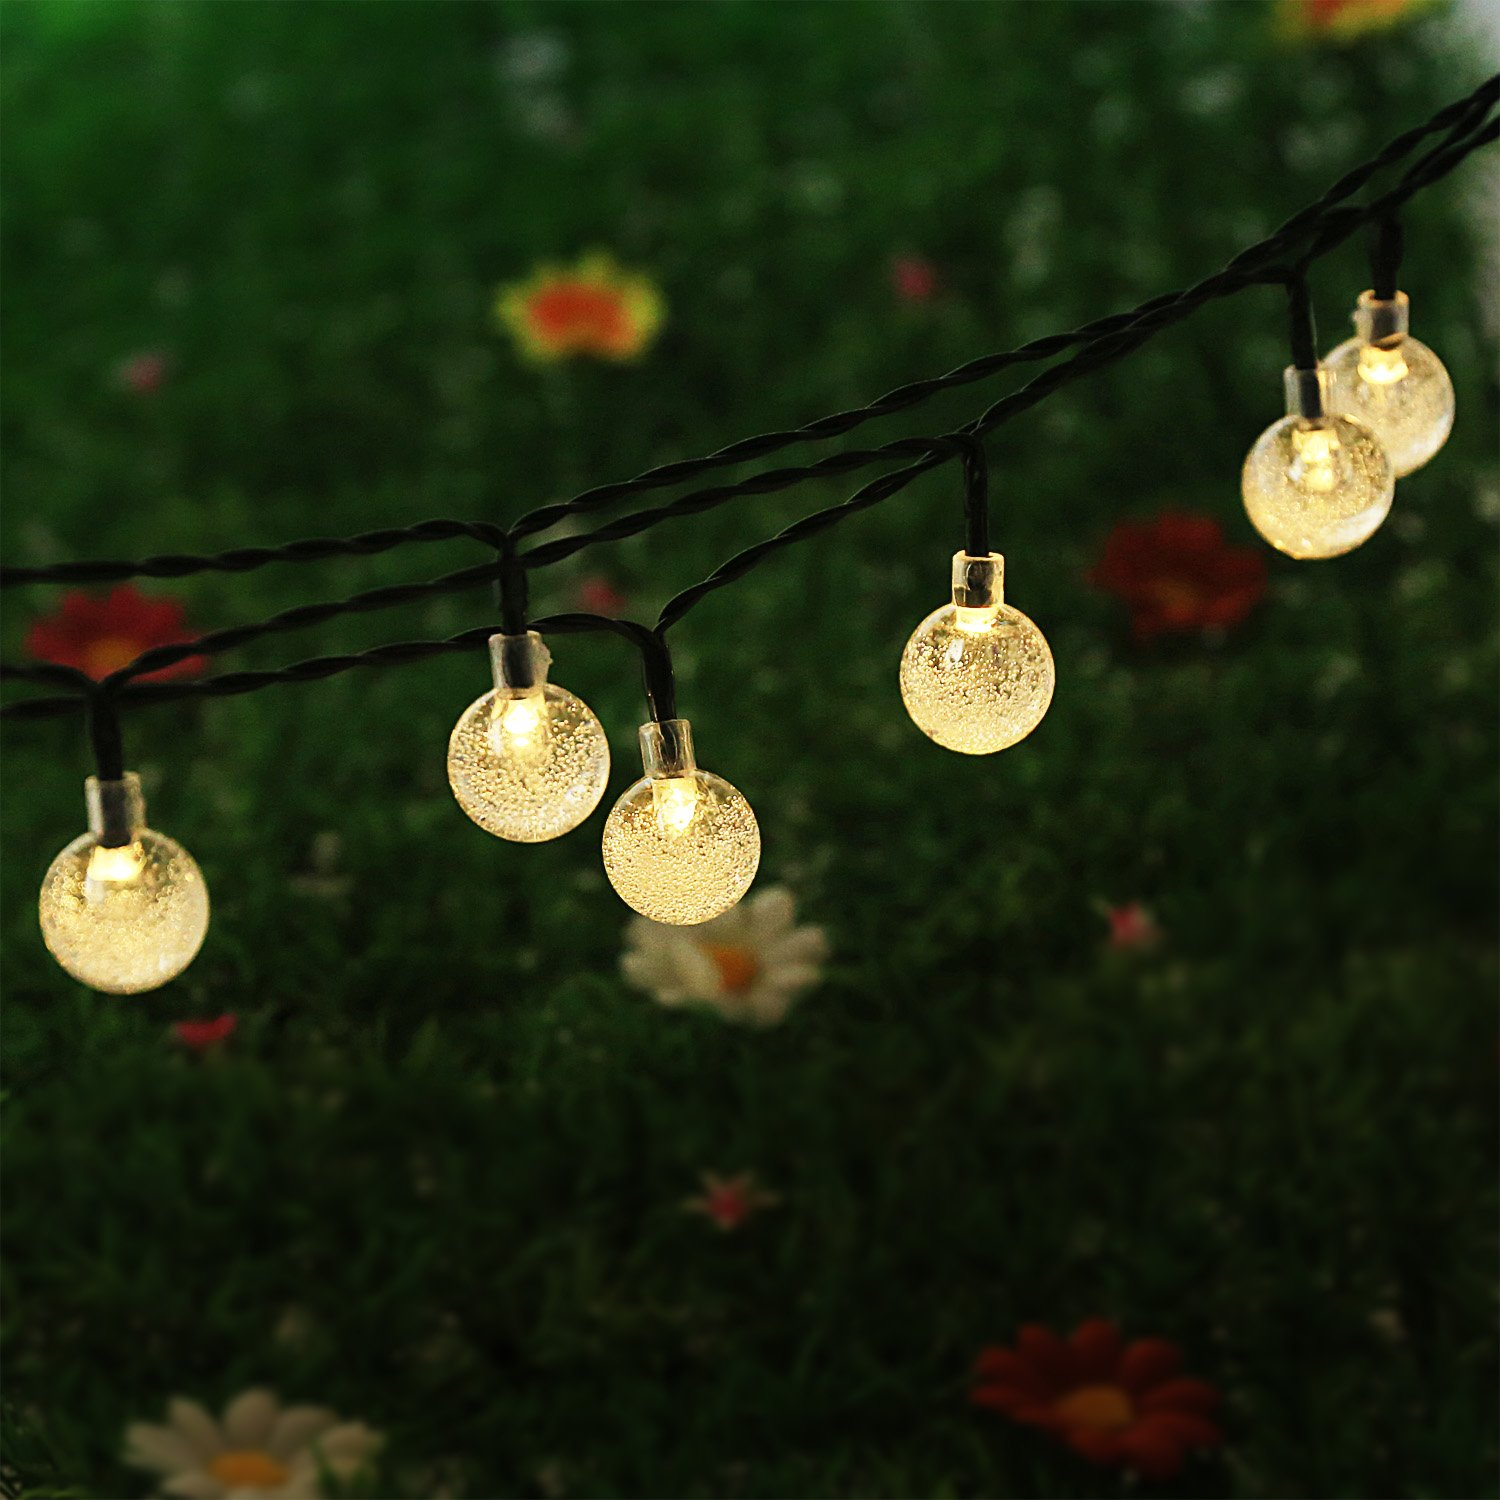 LED Crystal Ball Solar Powered Outdoor String Lights for Outside Garden Patio Party Christmas (Warm White)